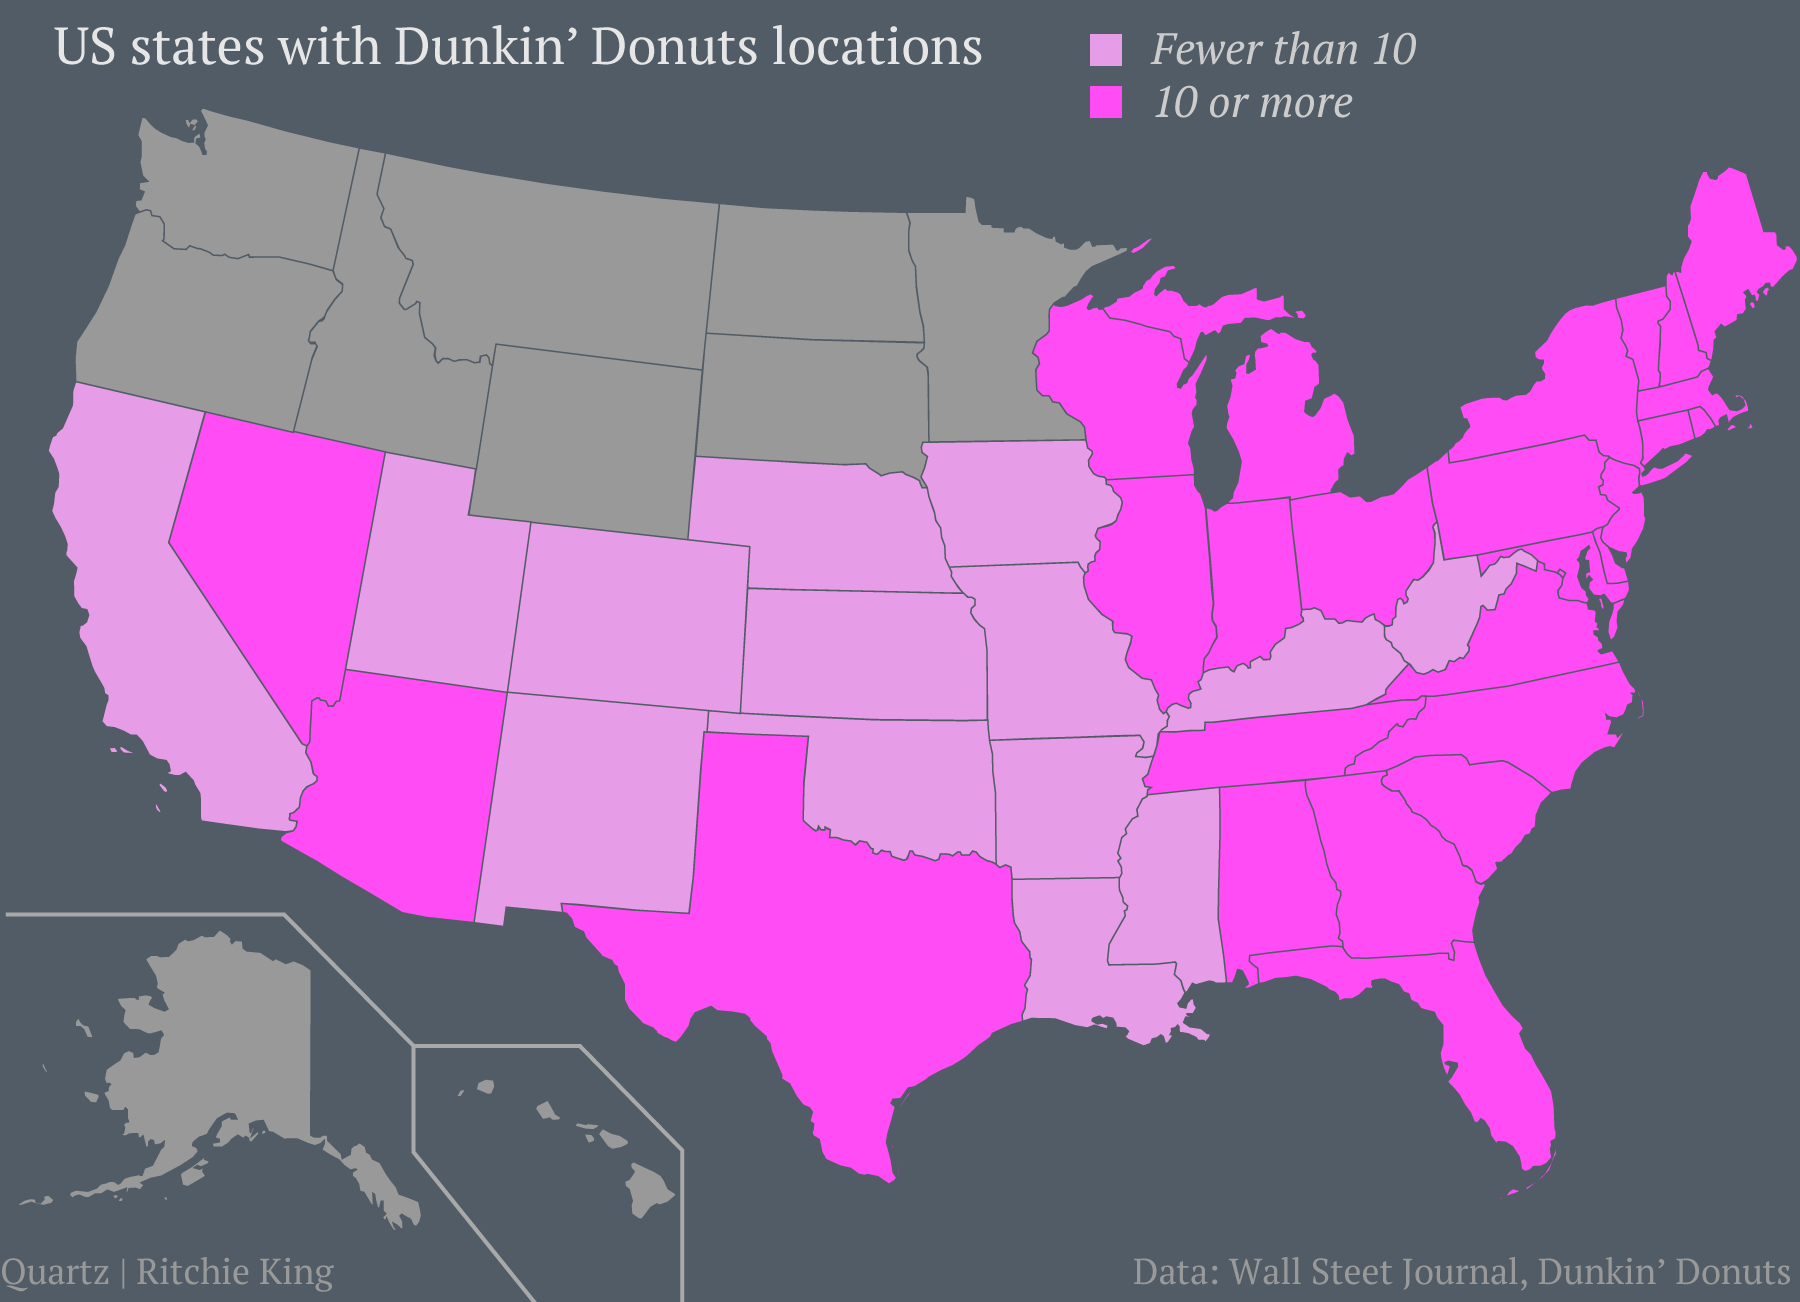 states-with-dunkin-donuts-5